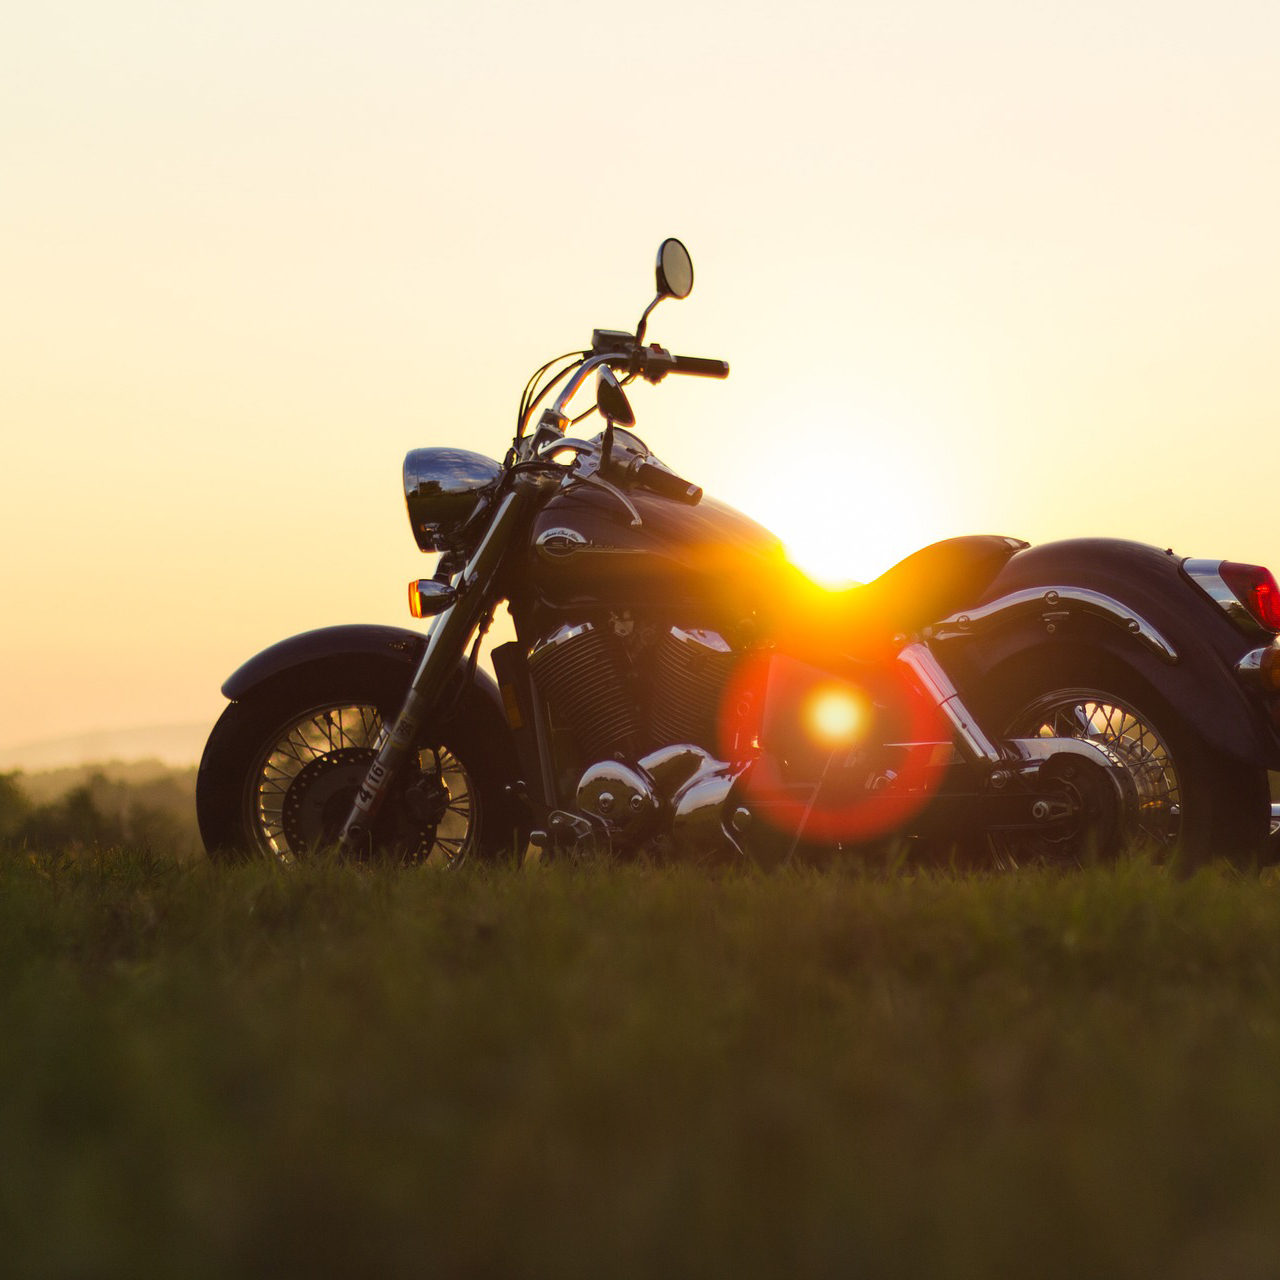 motorcycle-insurance-grand-haven, motorcycle-insurance-near-me, motorcycle-insurance-mchigan